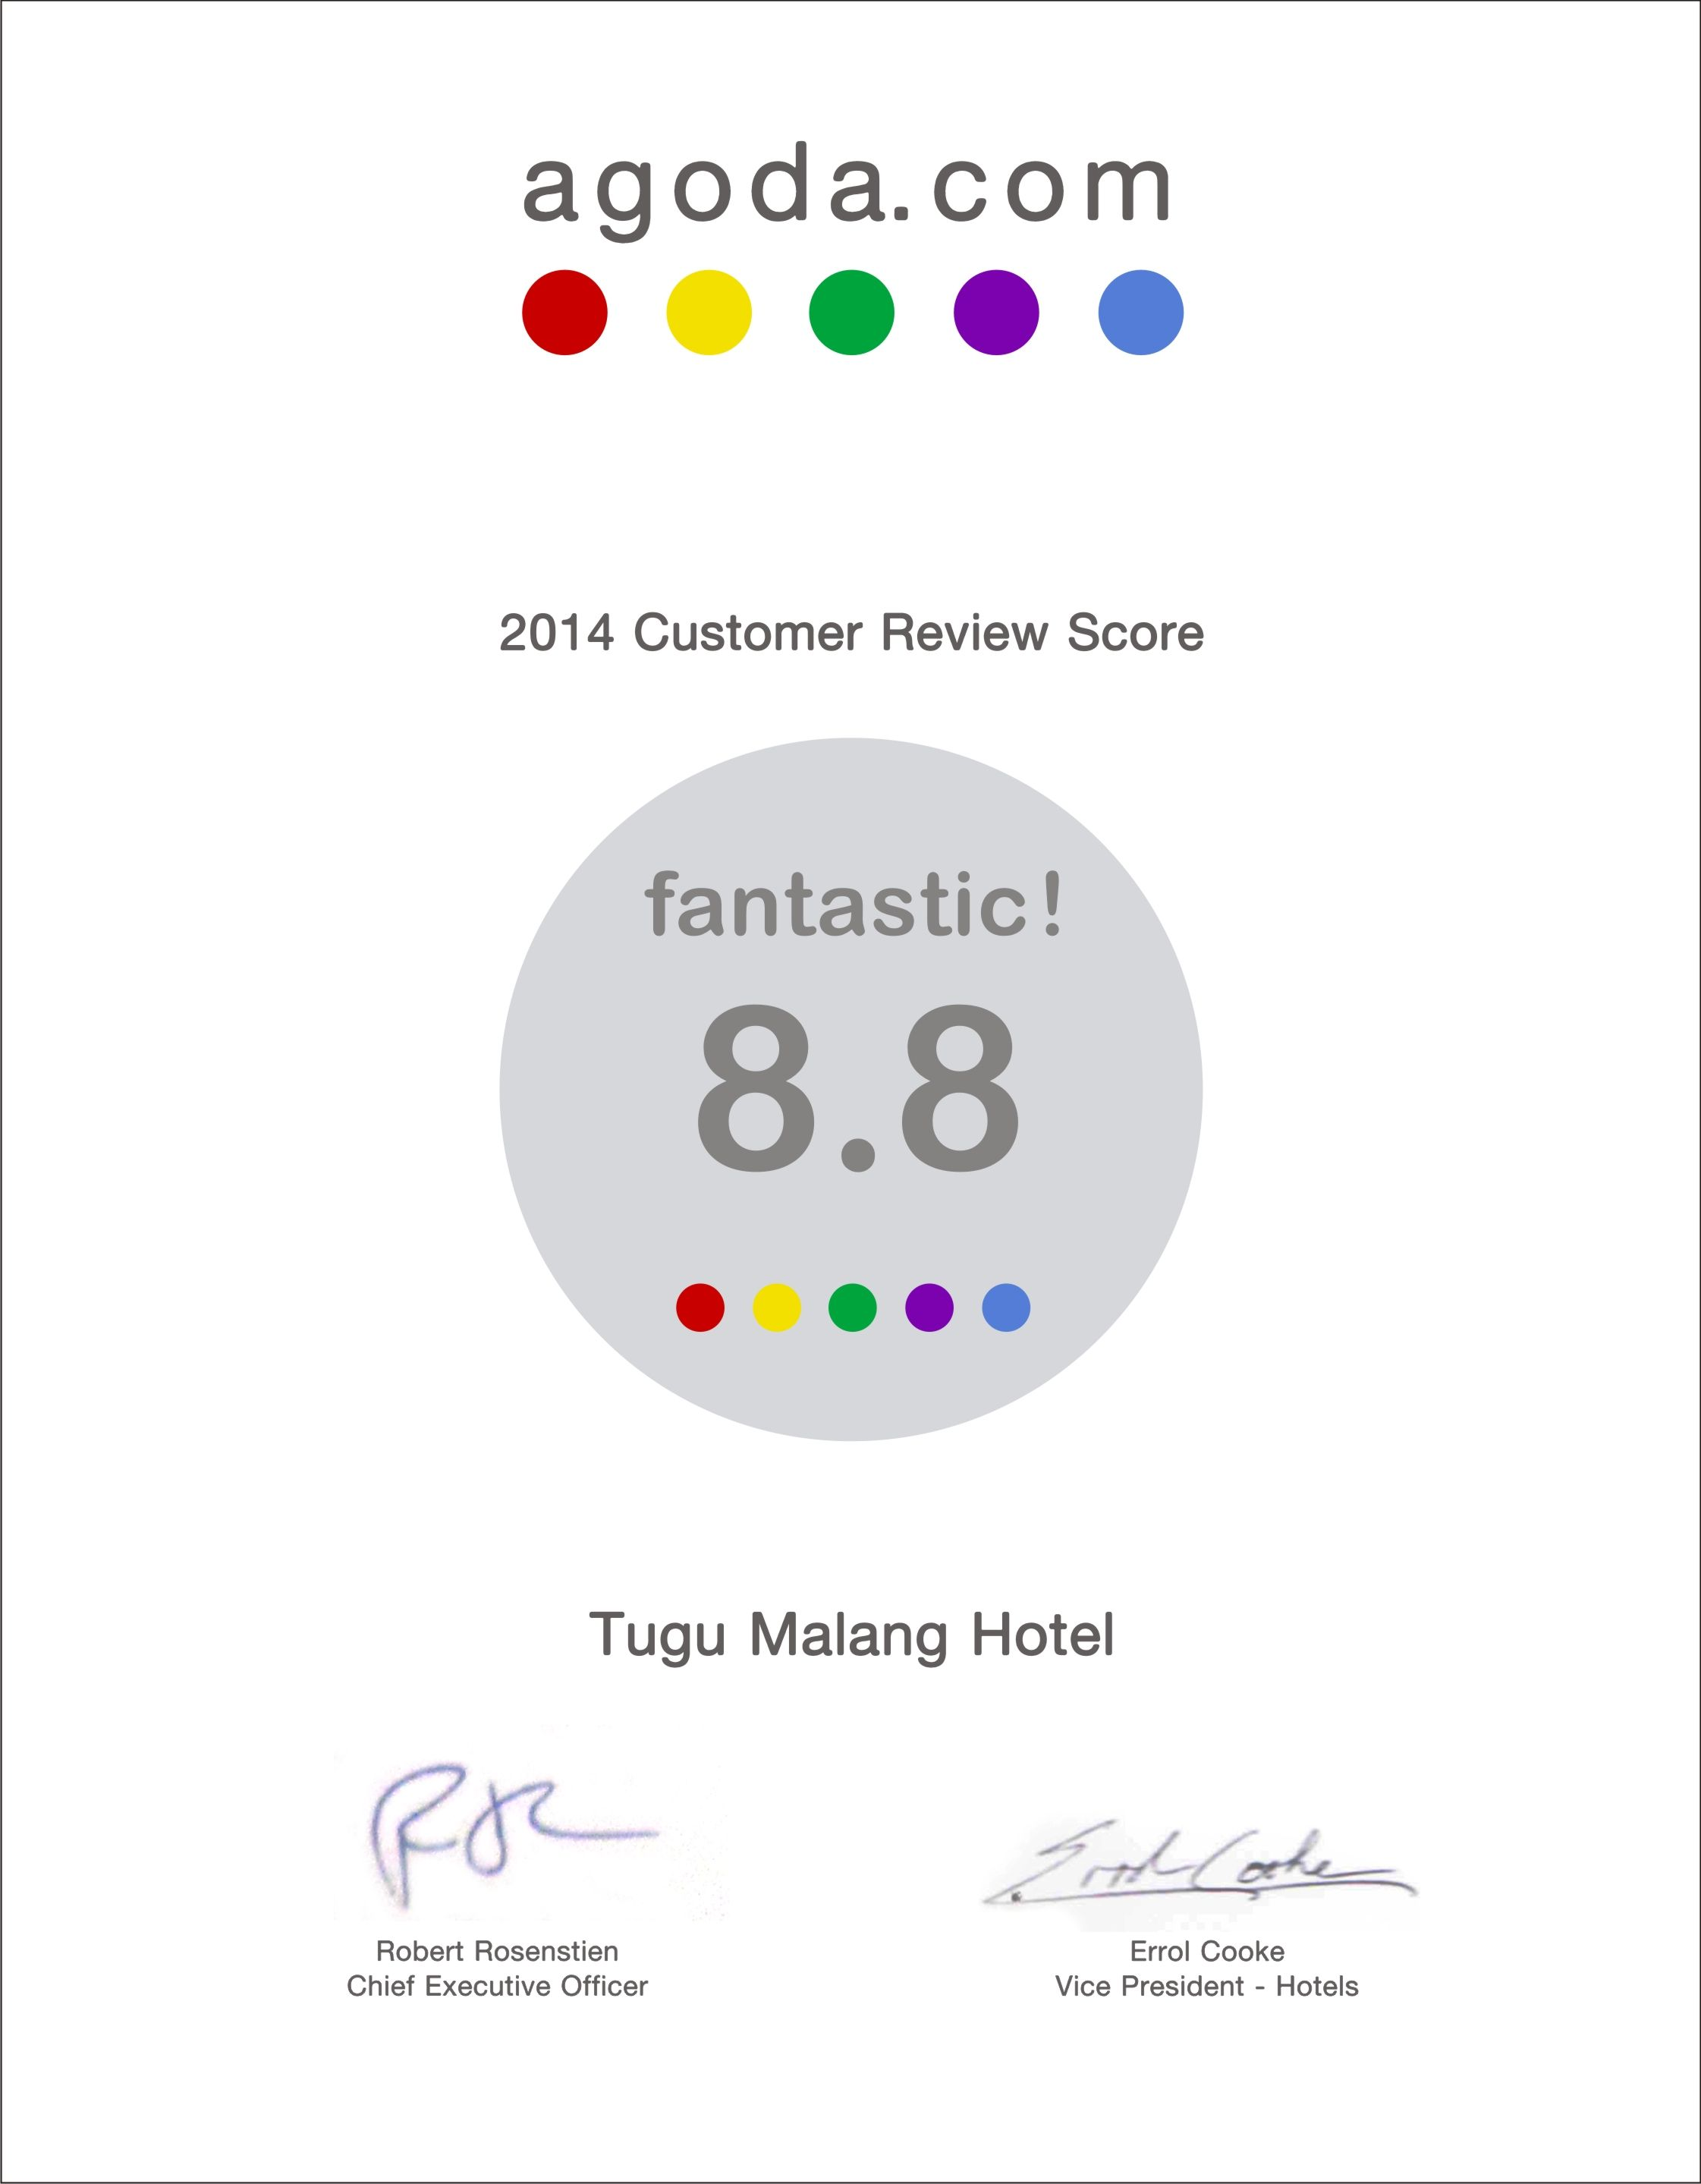 Hotel Tugu Malang 2014 Customer Review From Agoda